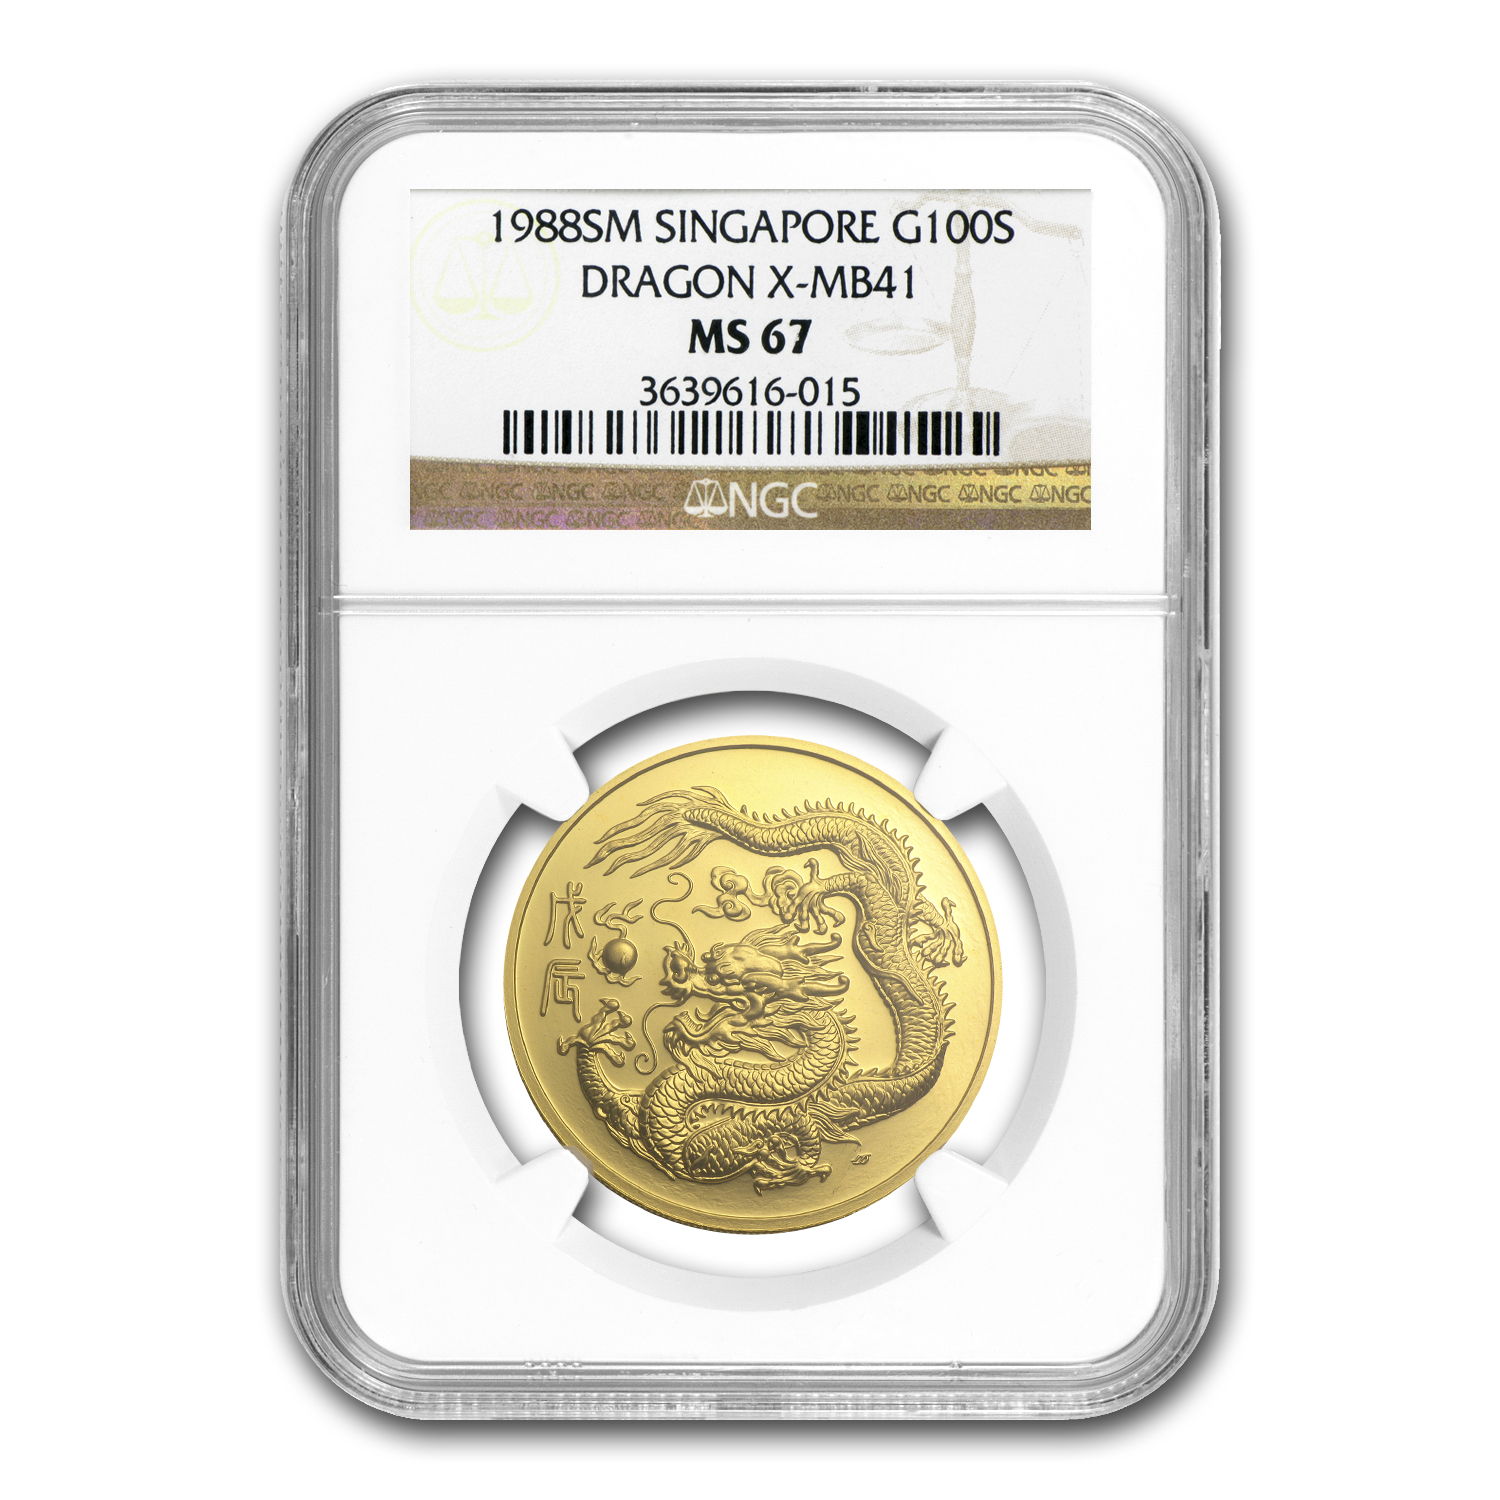 1988 Singapore 1 oz Gold 100 Singold Dragon MS-67 NGC